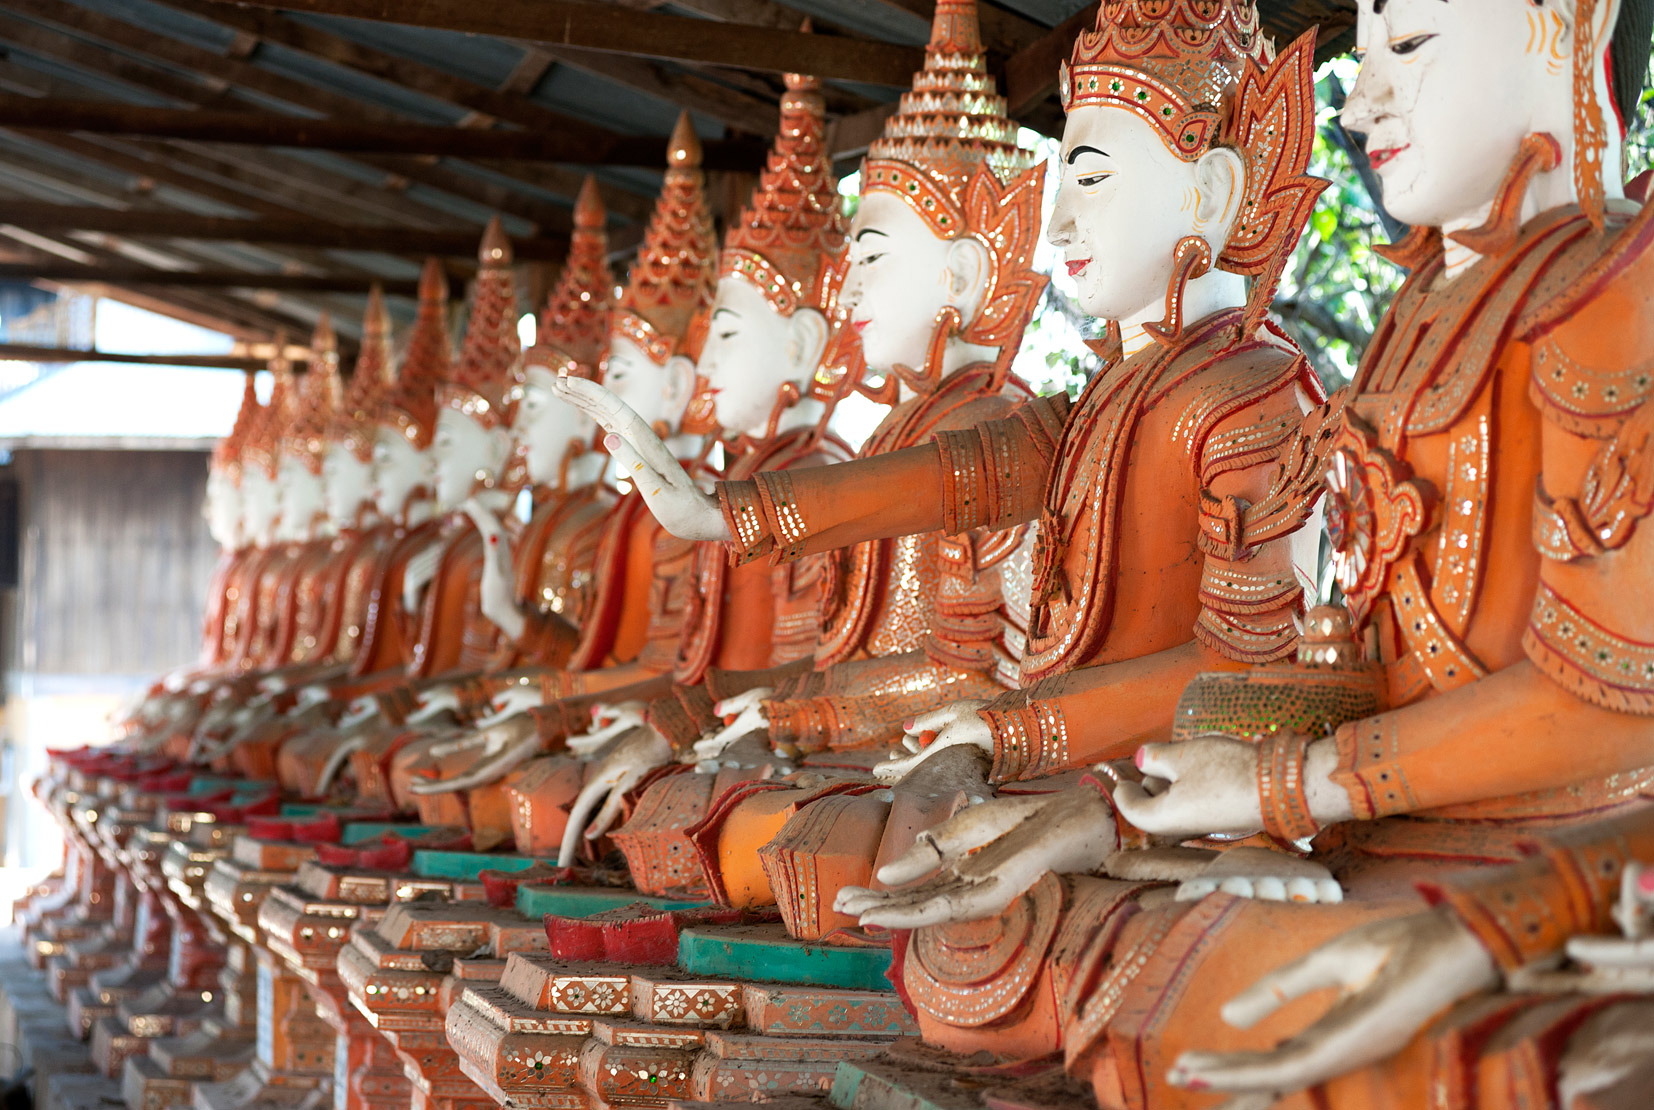 Line of seated Buddhas at the Maha Bodhi Ta Htaung monastery, Monywa township, Sagaing Division.